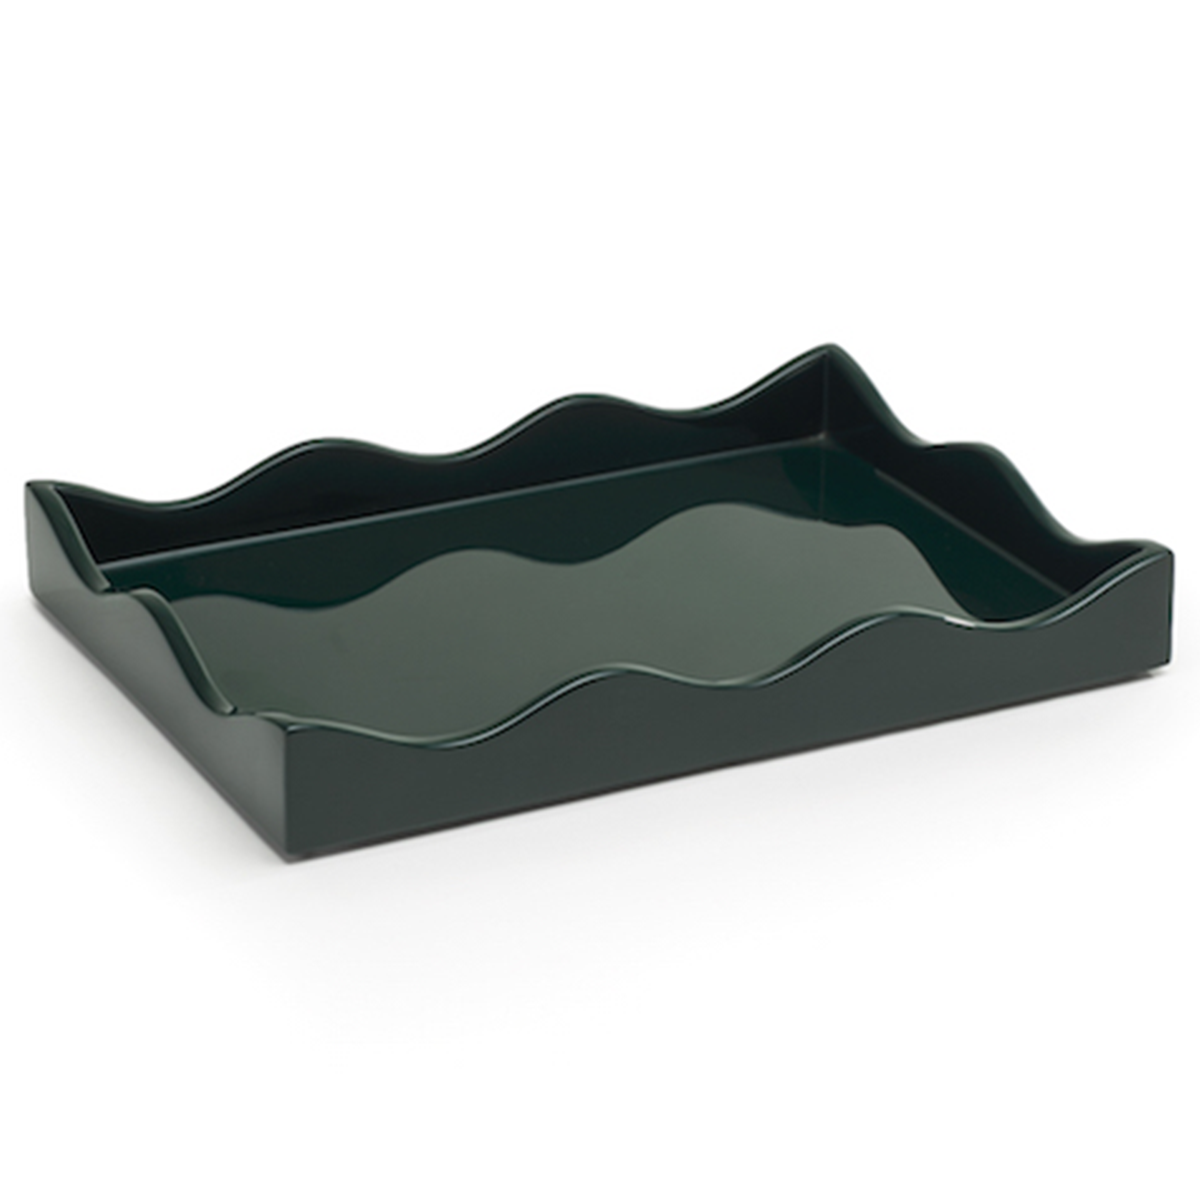 Small Belles Rives Tray - Bottle Green